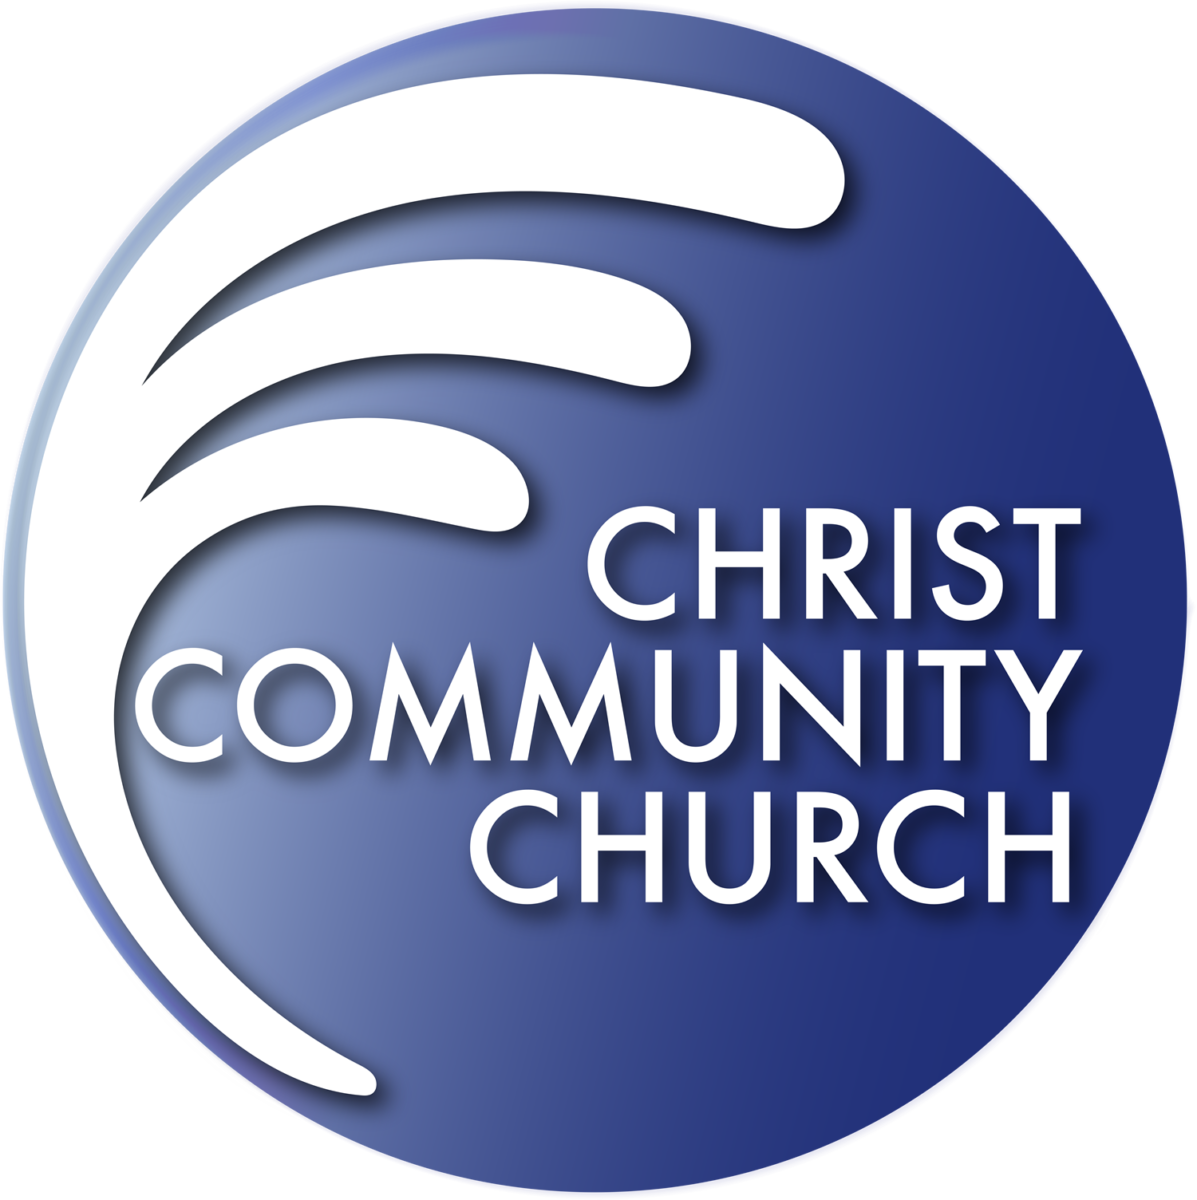 Christ Community Church - Pinehurst NC